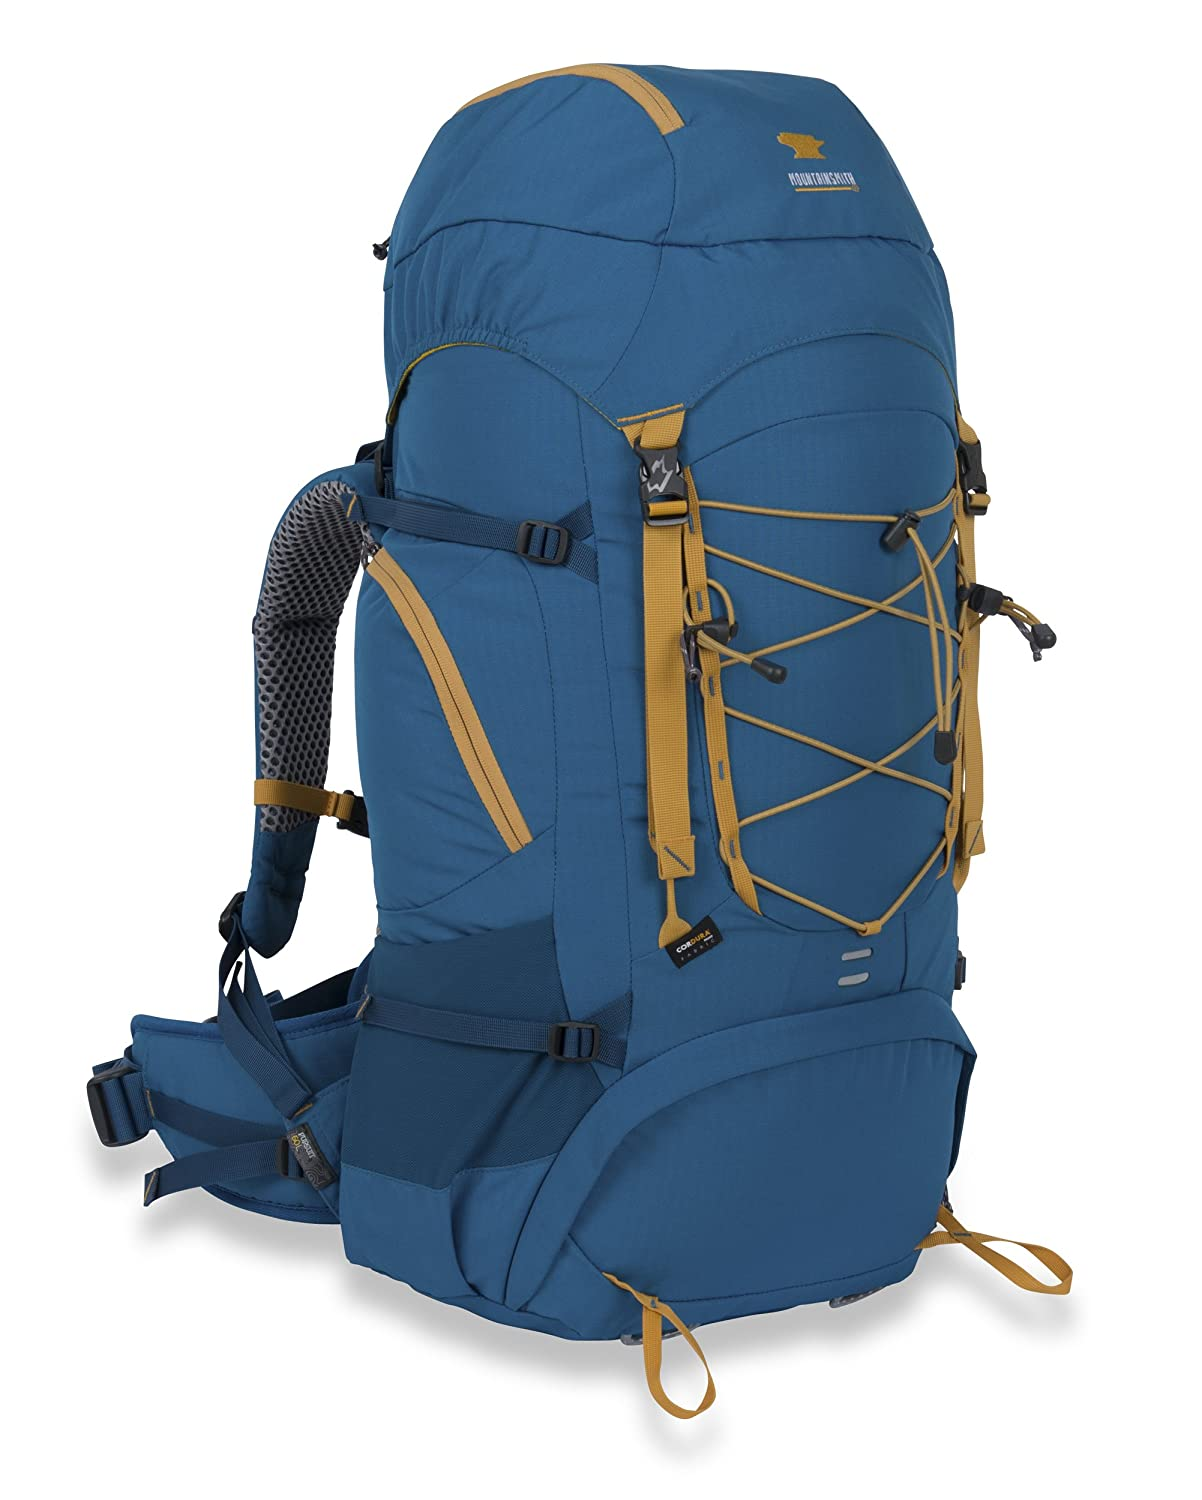 Amazon.com   Mountainsmith Pursuit 50 Backpack   Sports   Outdoors 2b594e623d